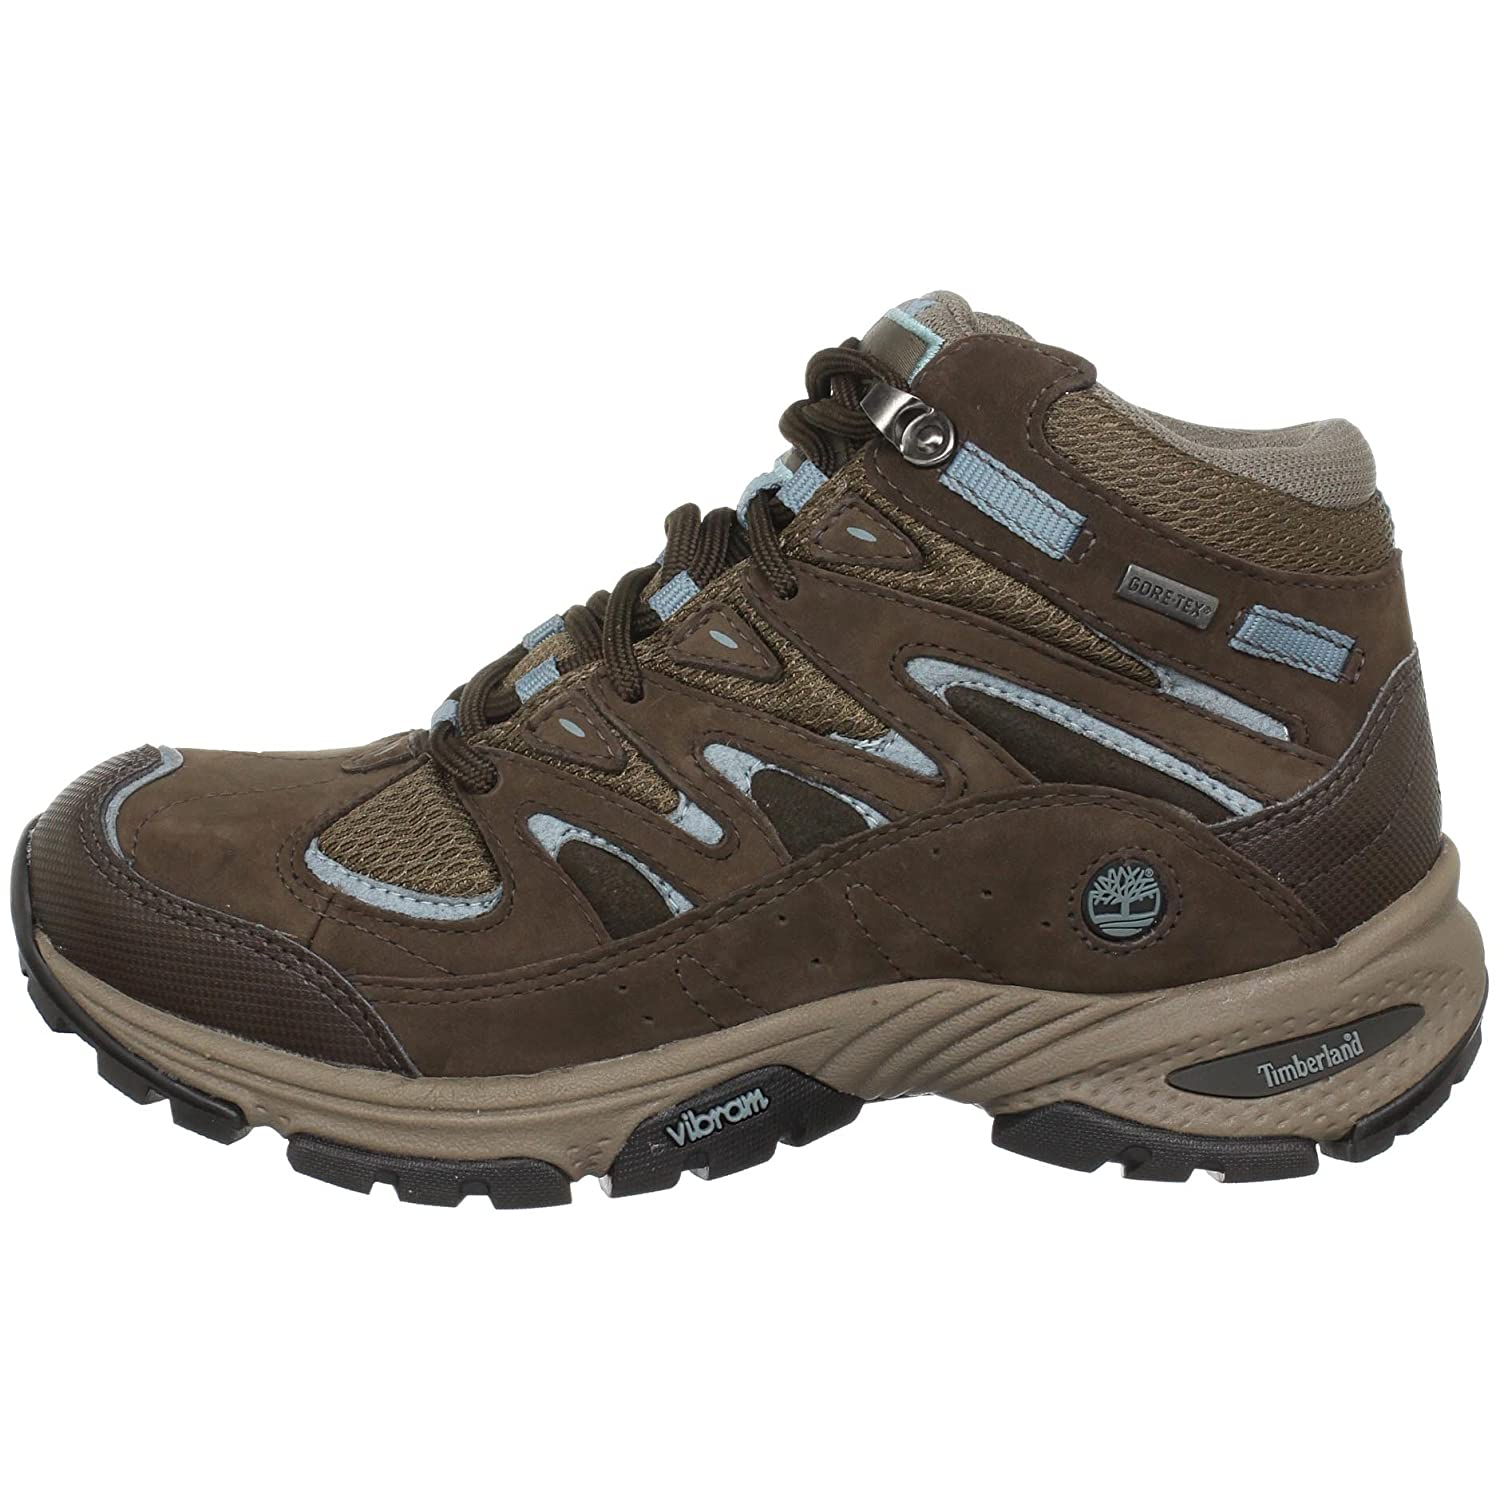 0bf507505f9 Amazon.com | Timberland Women's Hyper Ledge Mid GTX Boot | Hiking Boots